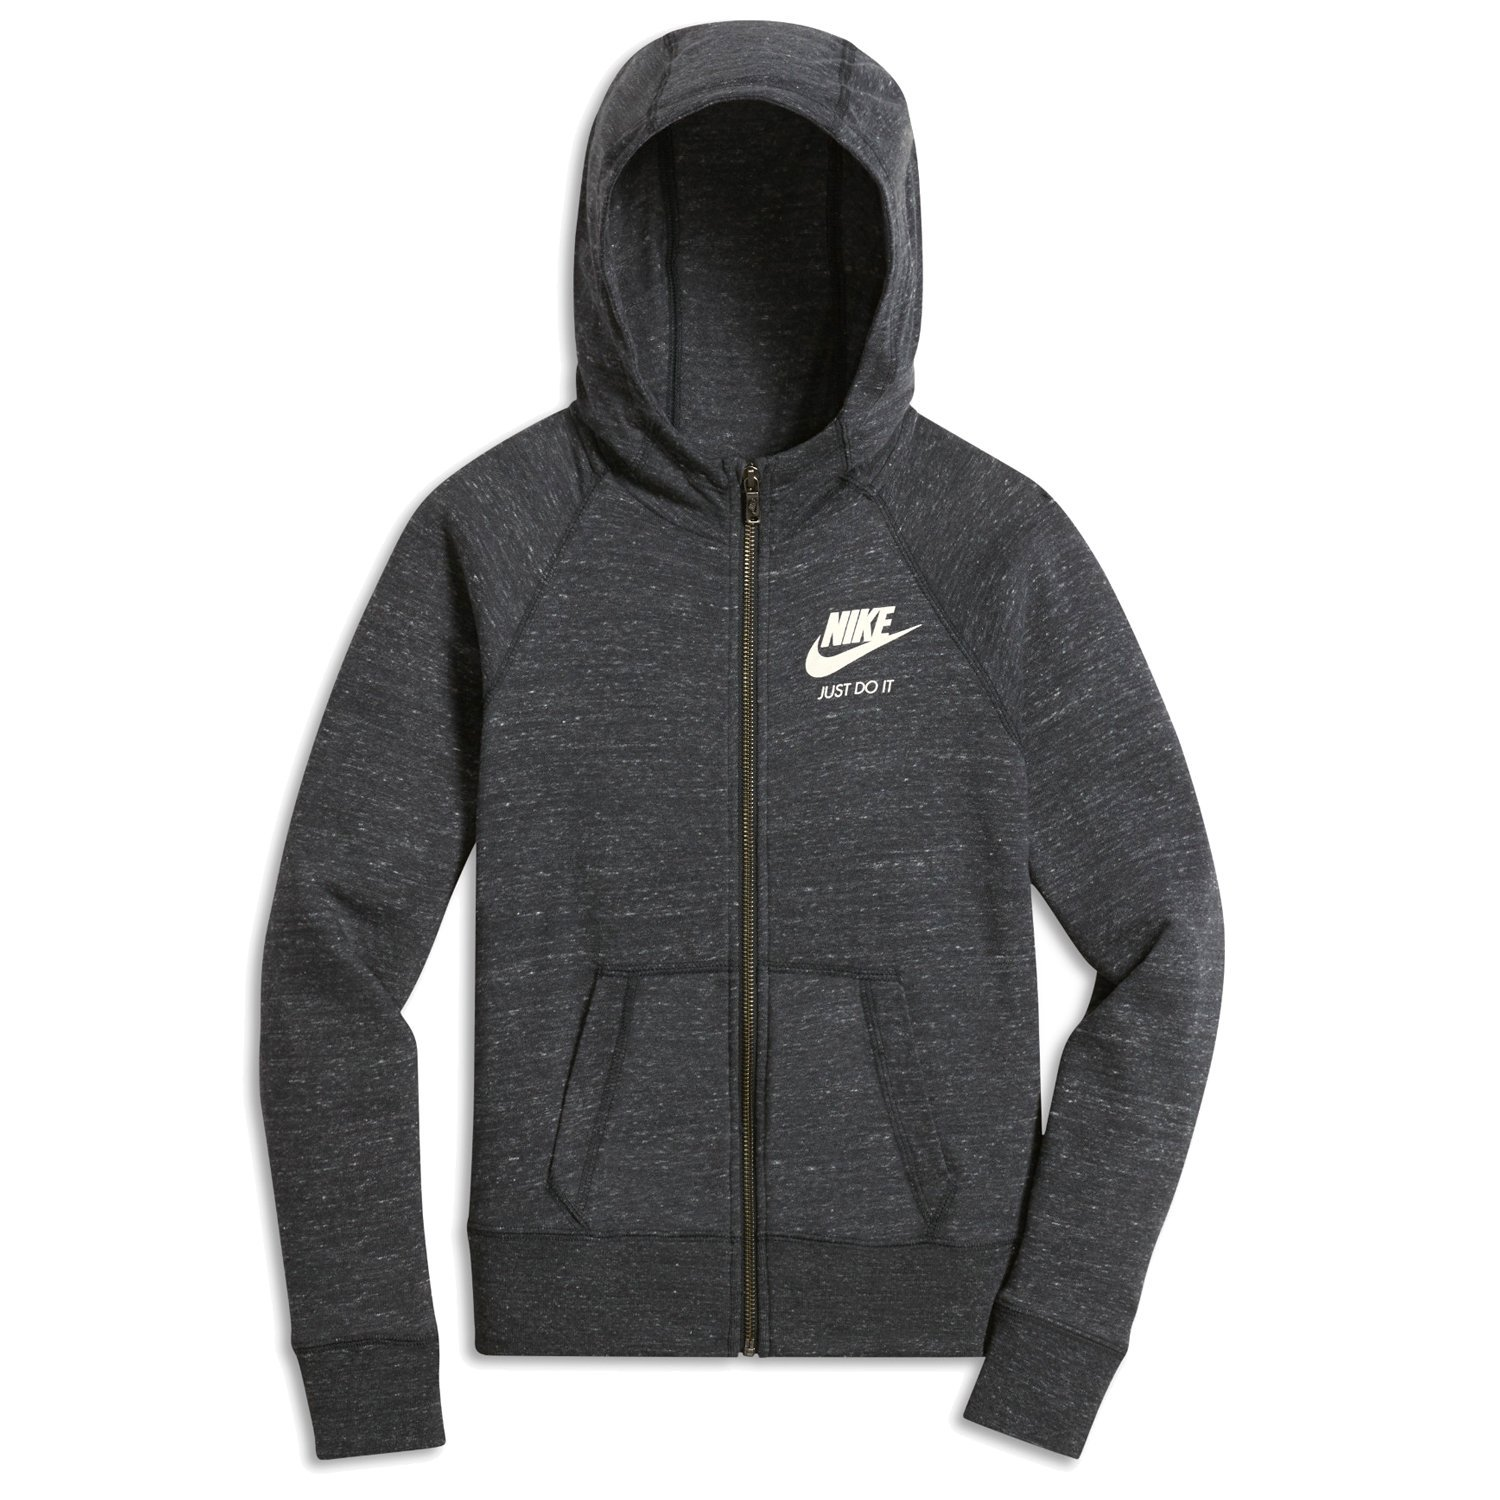 a1f251686ef Cheap Nike Hoodie Girls, find Nike Hoodie Girls deals on line at ...